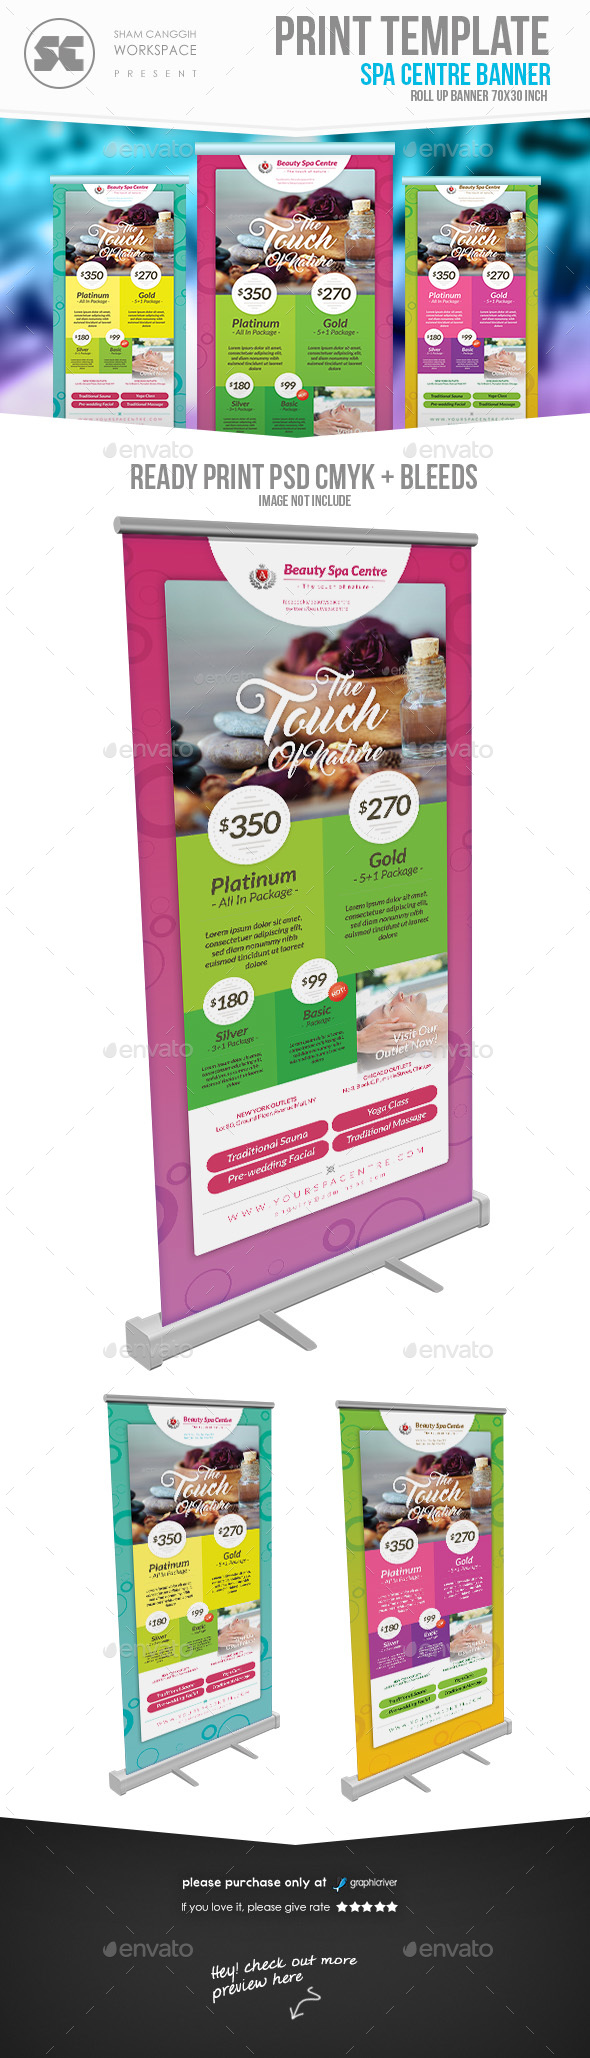 beauty / Spa Banner - Signage Print Templates